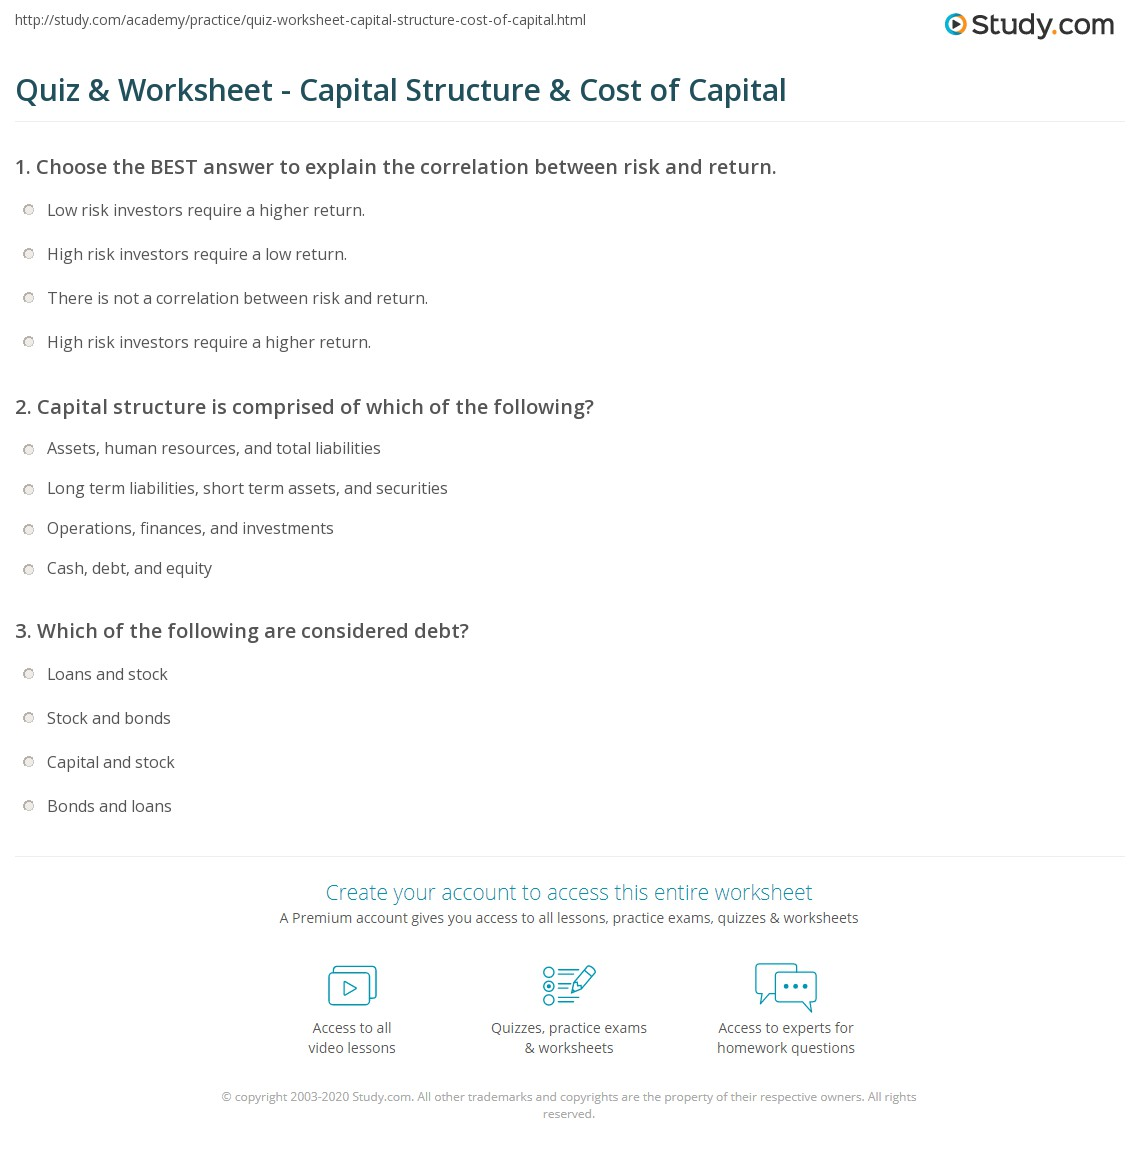 What is the structure of capital